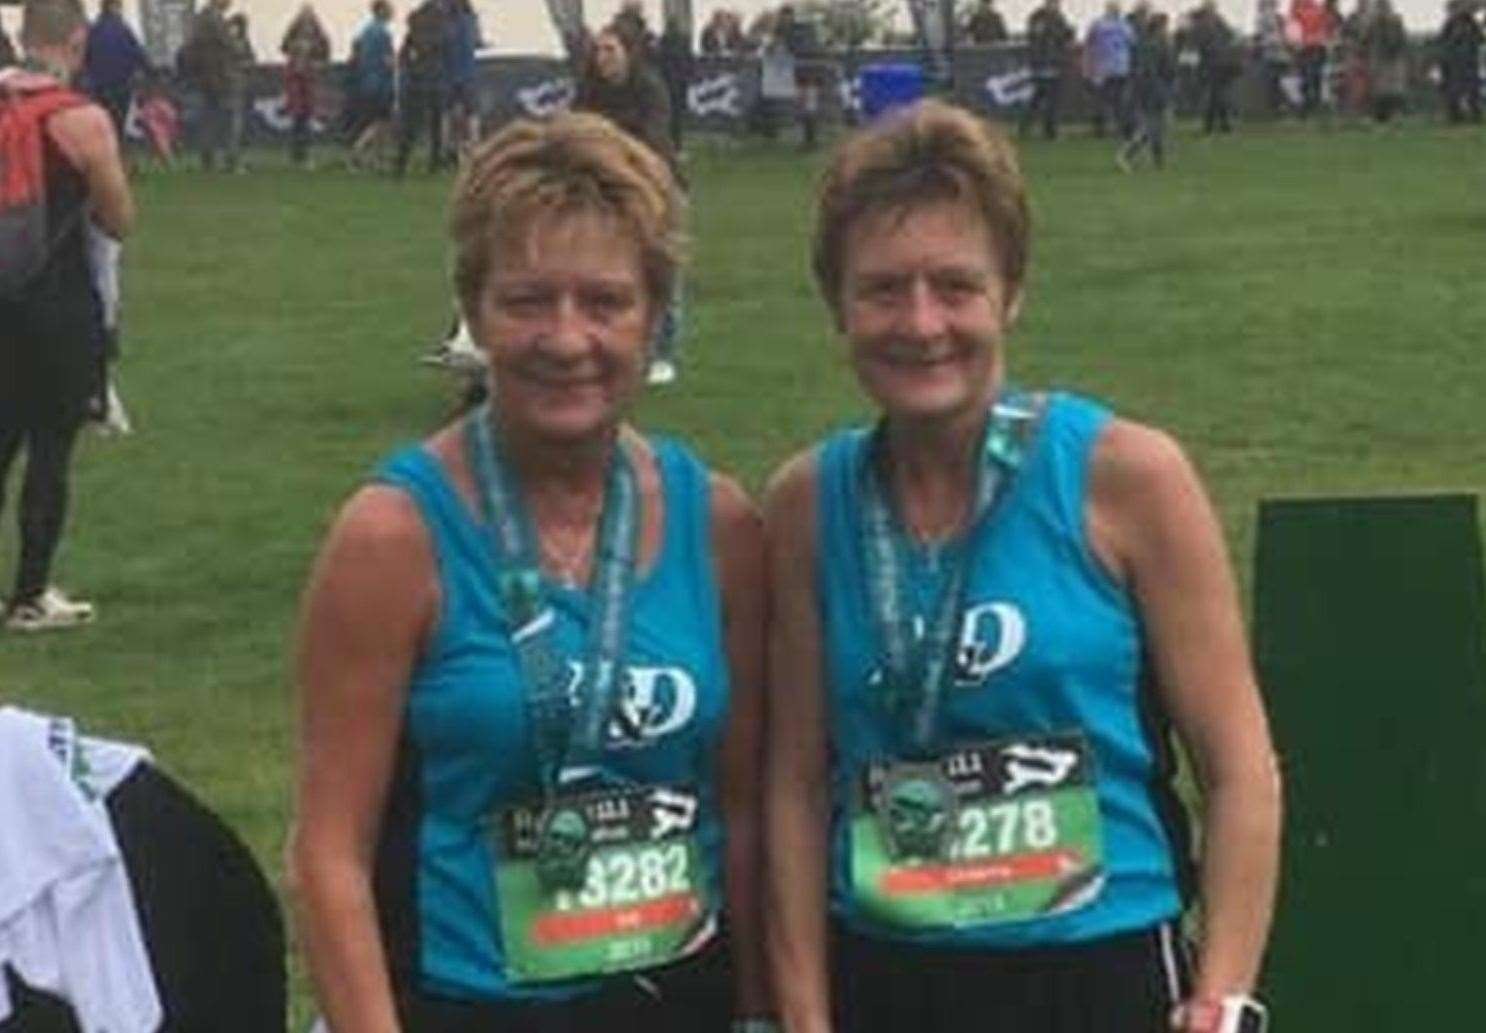 The top two ladies after four weeks. Ashford & District's Gill O'Connor and Christine Costiff at the Rutland Half Marathon.